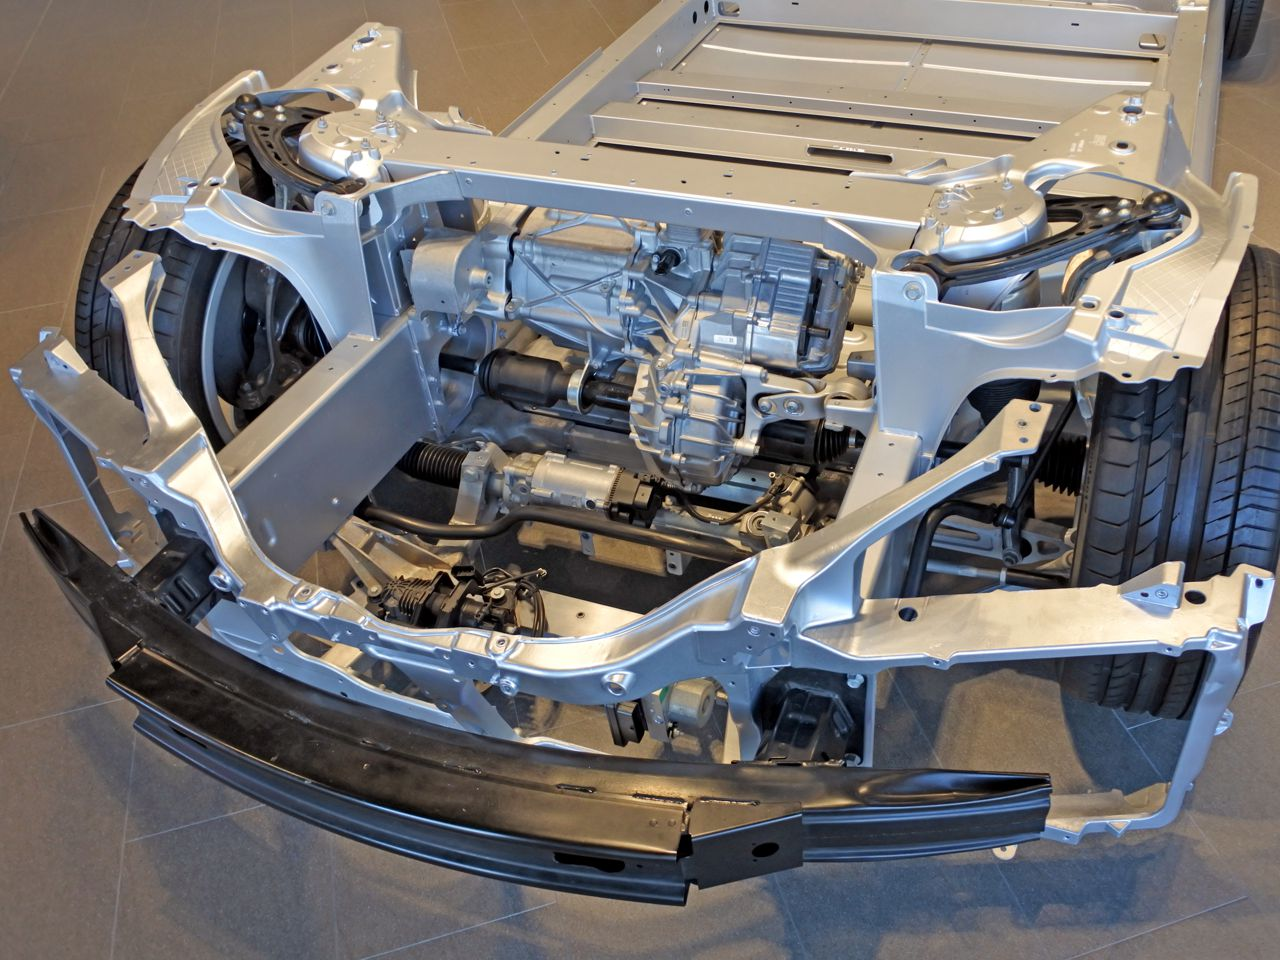 Above view of an electric car chassis and battery